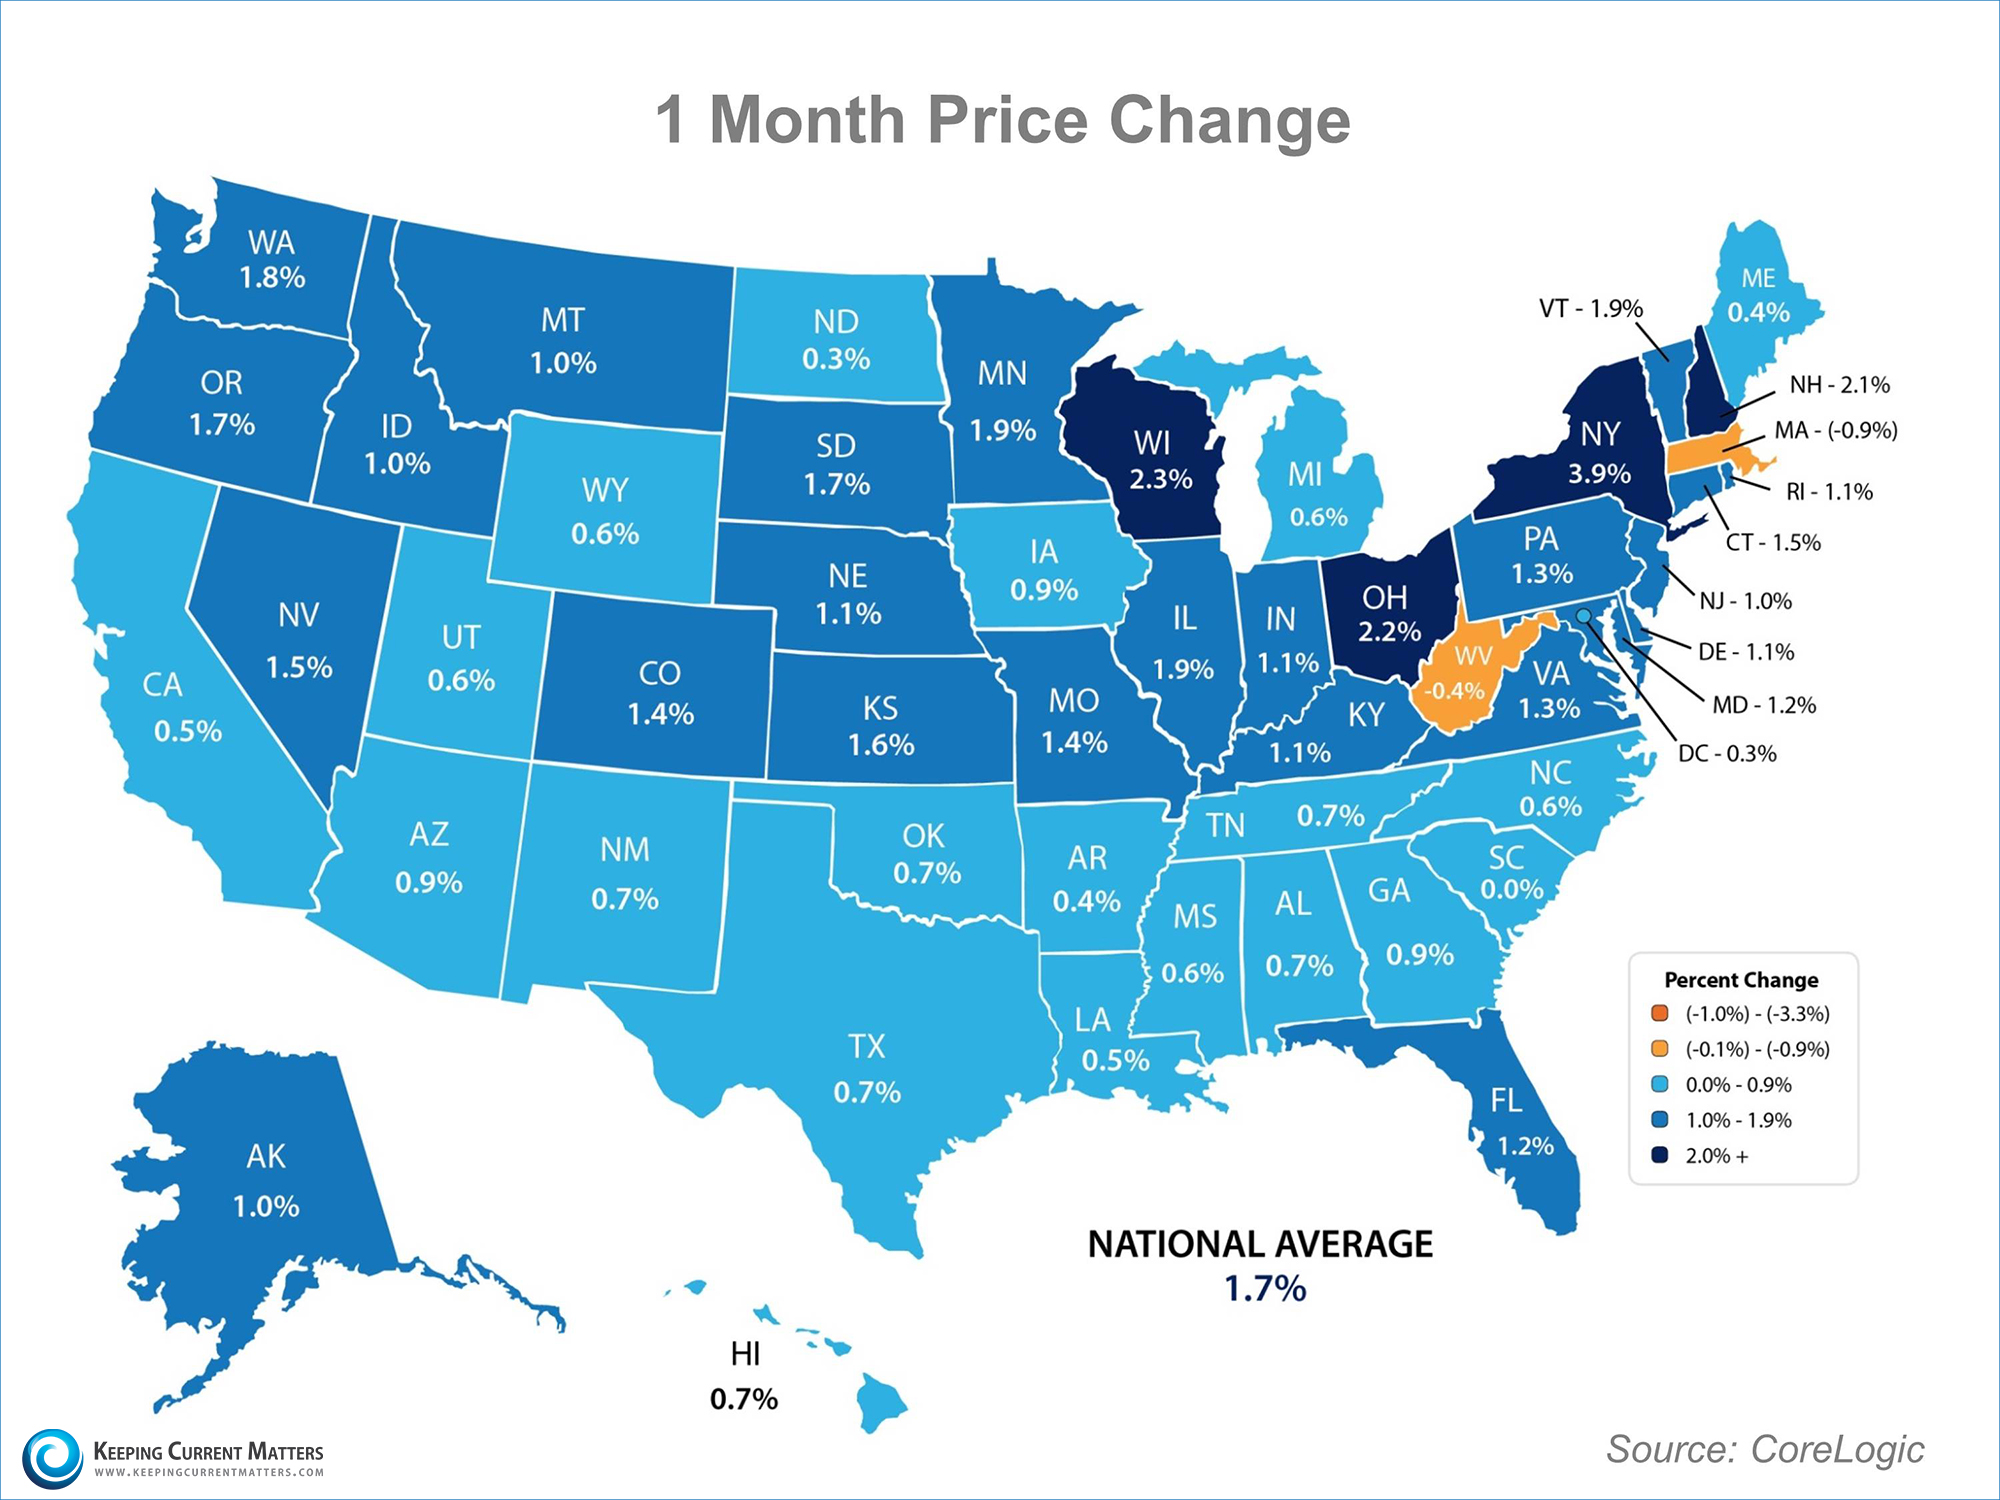 One Month Price Change | Keeping Current Matters